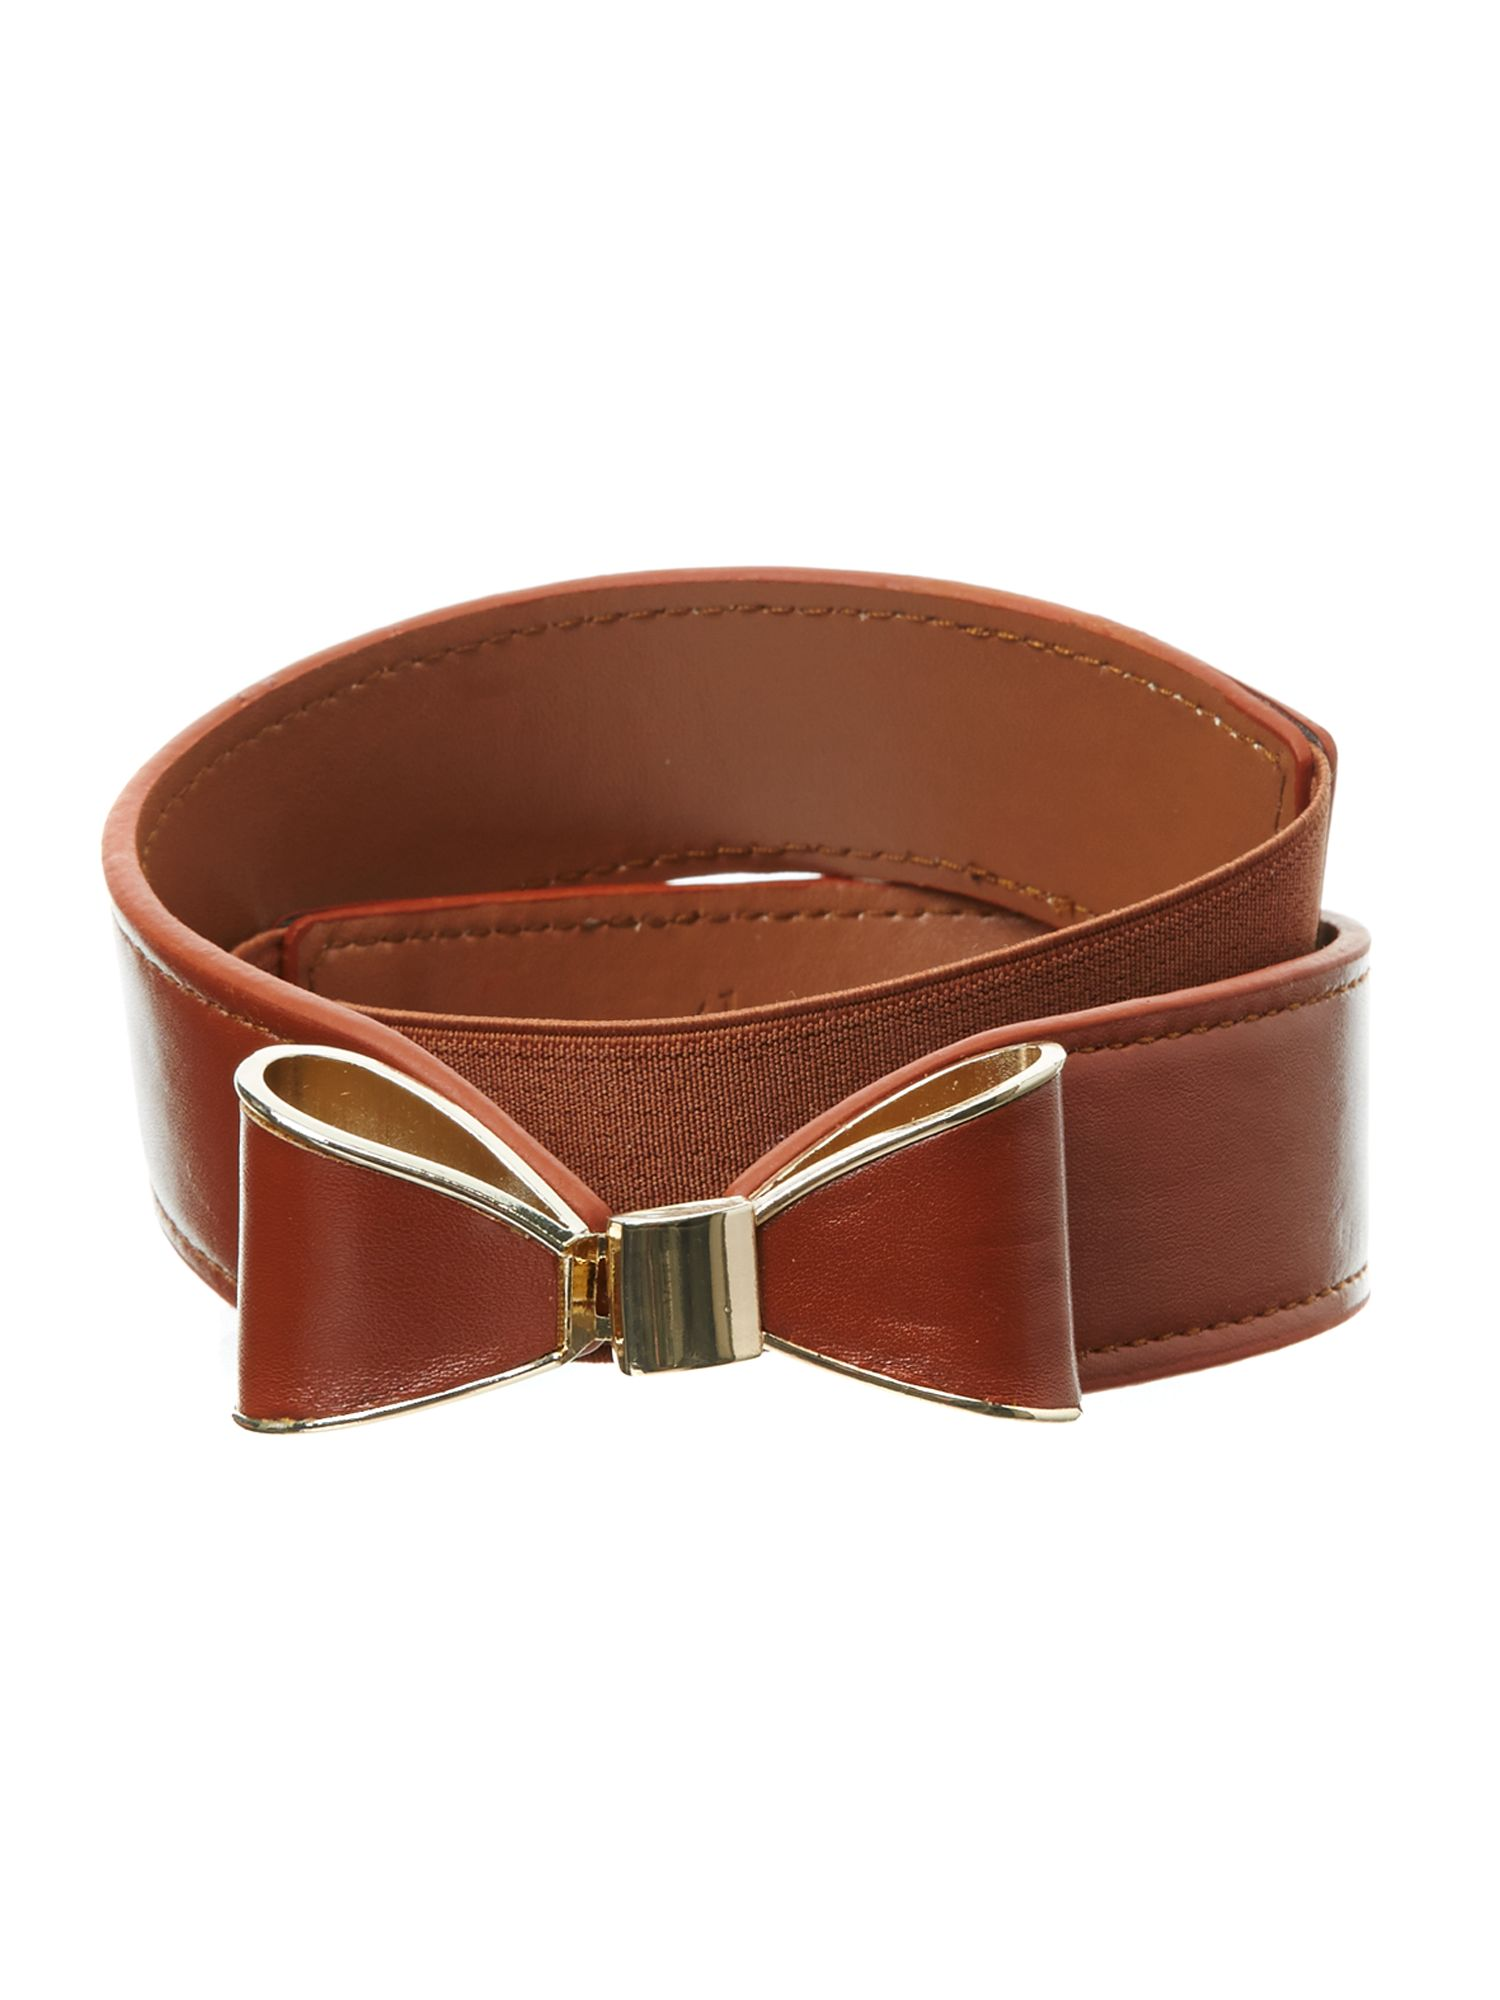 Metal bow belt